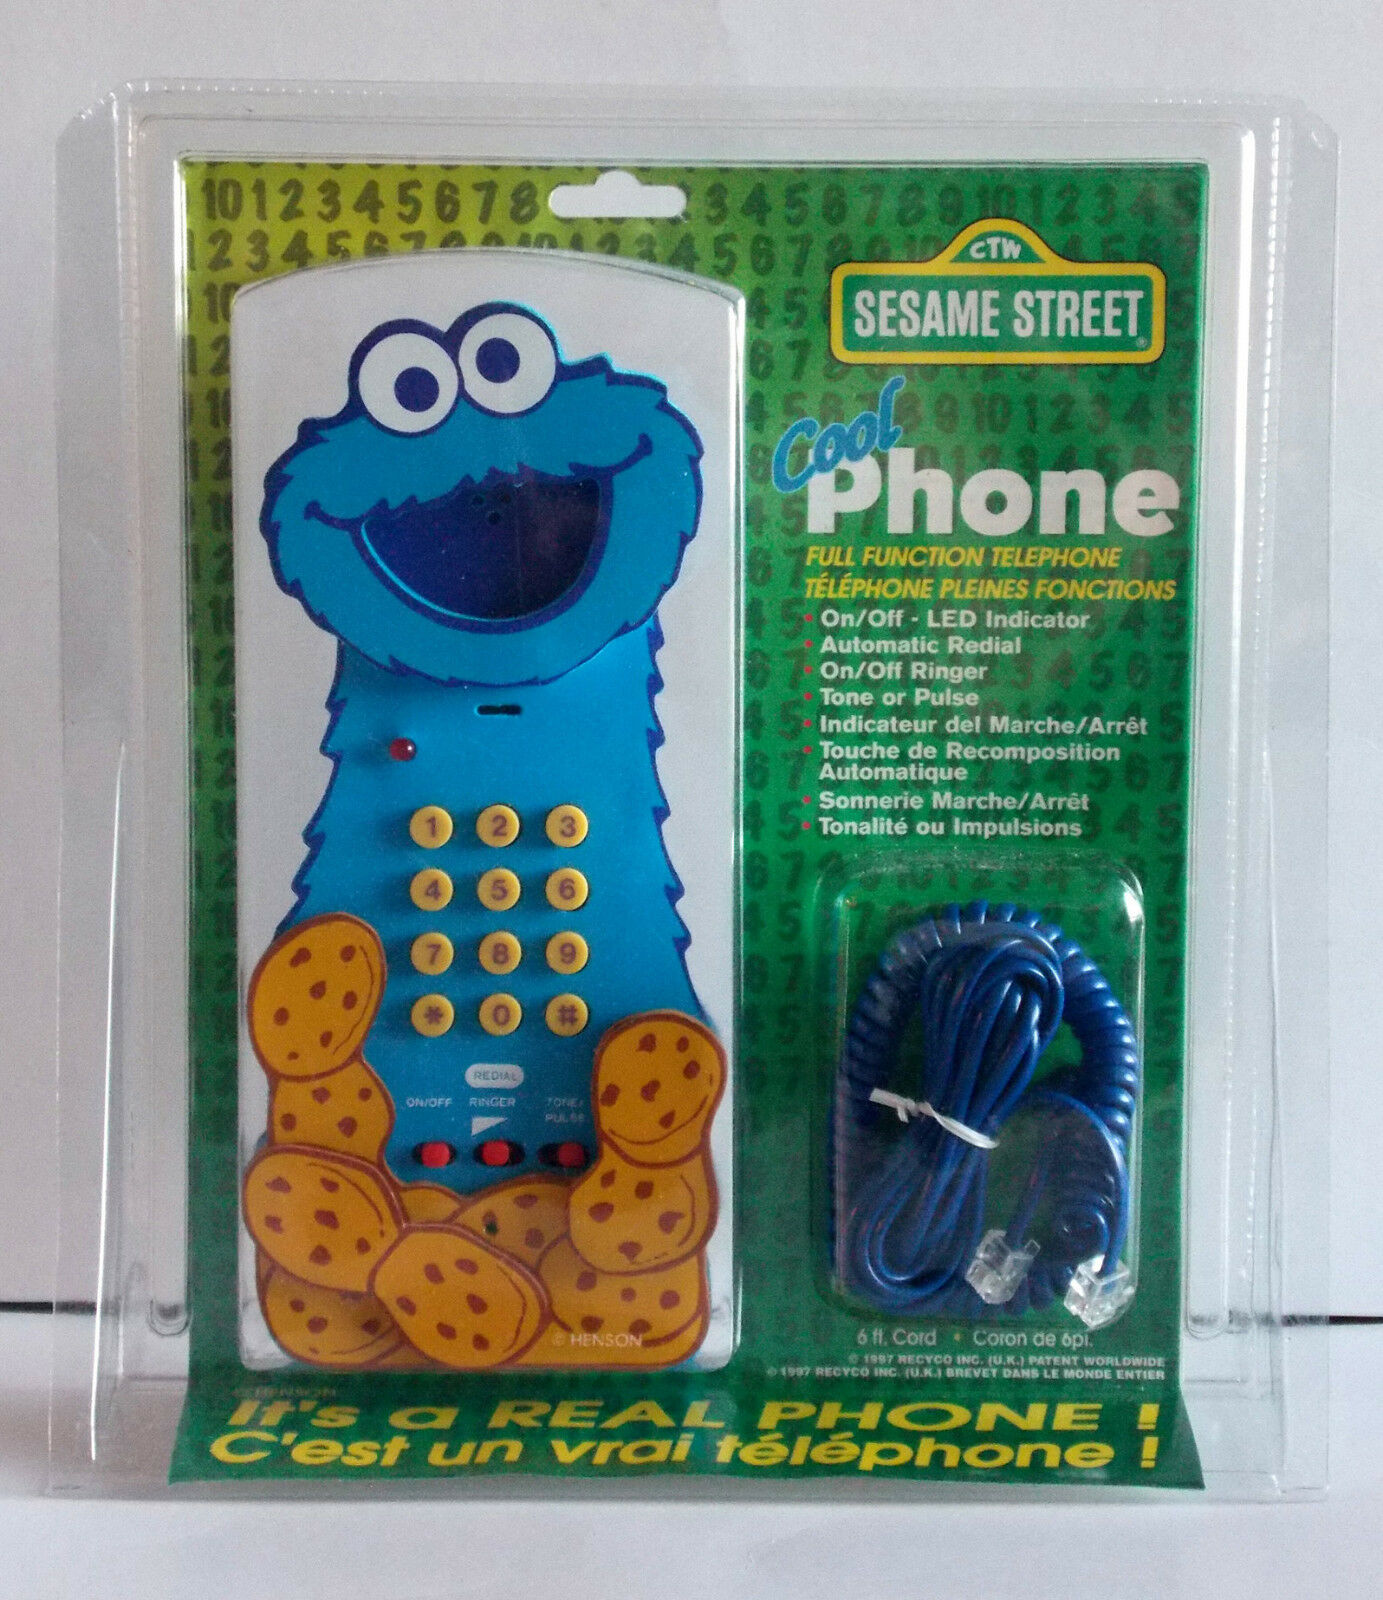 LOT OF 3 DIFFERENT SESAME STREET TELEPHONES FROM 1997, REAL CORDED PHONE